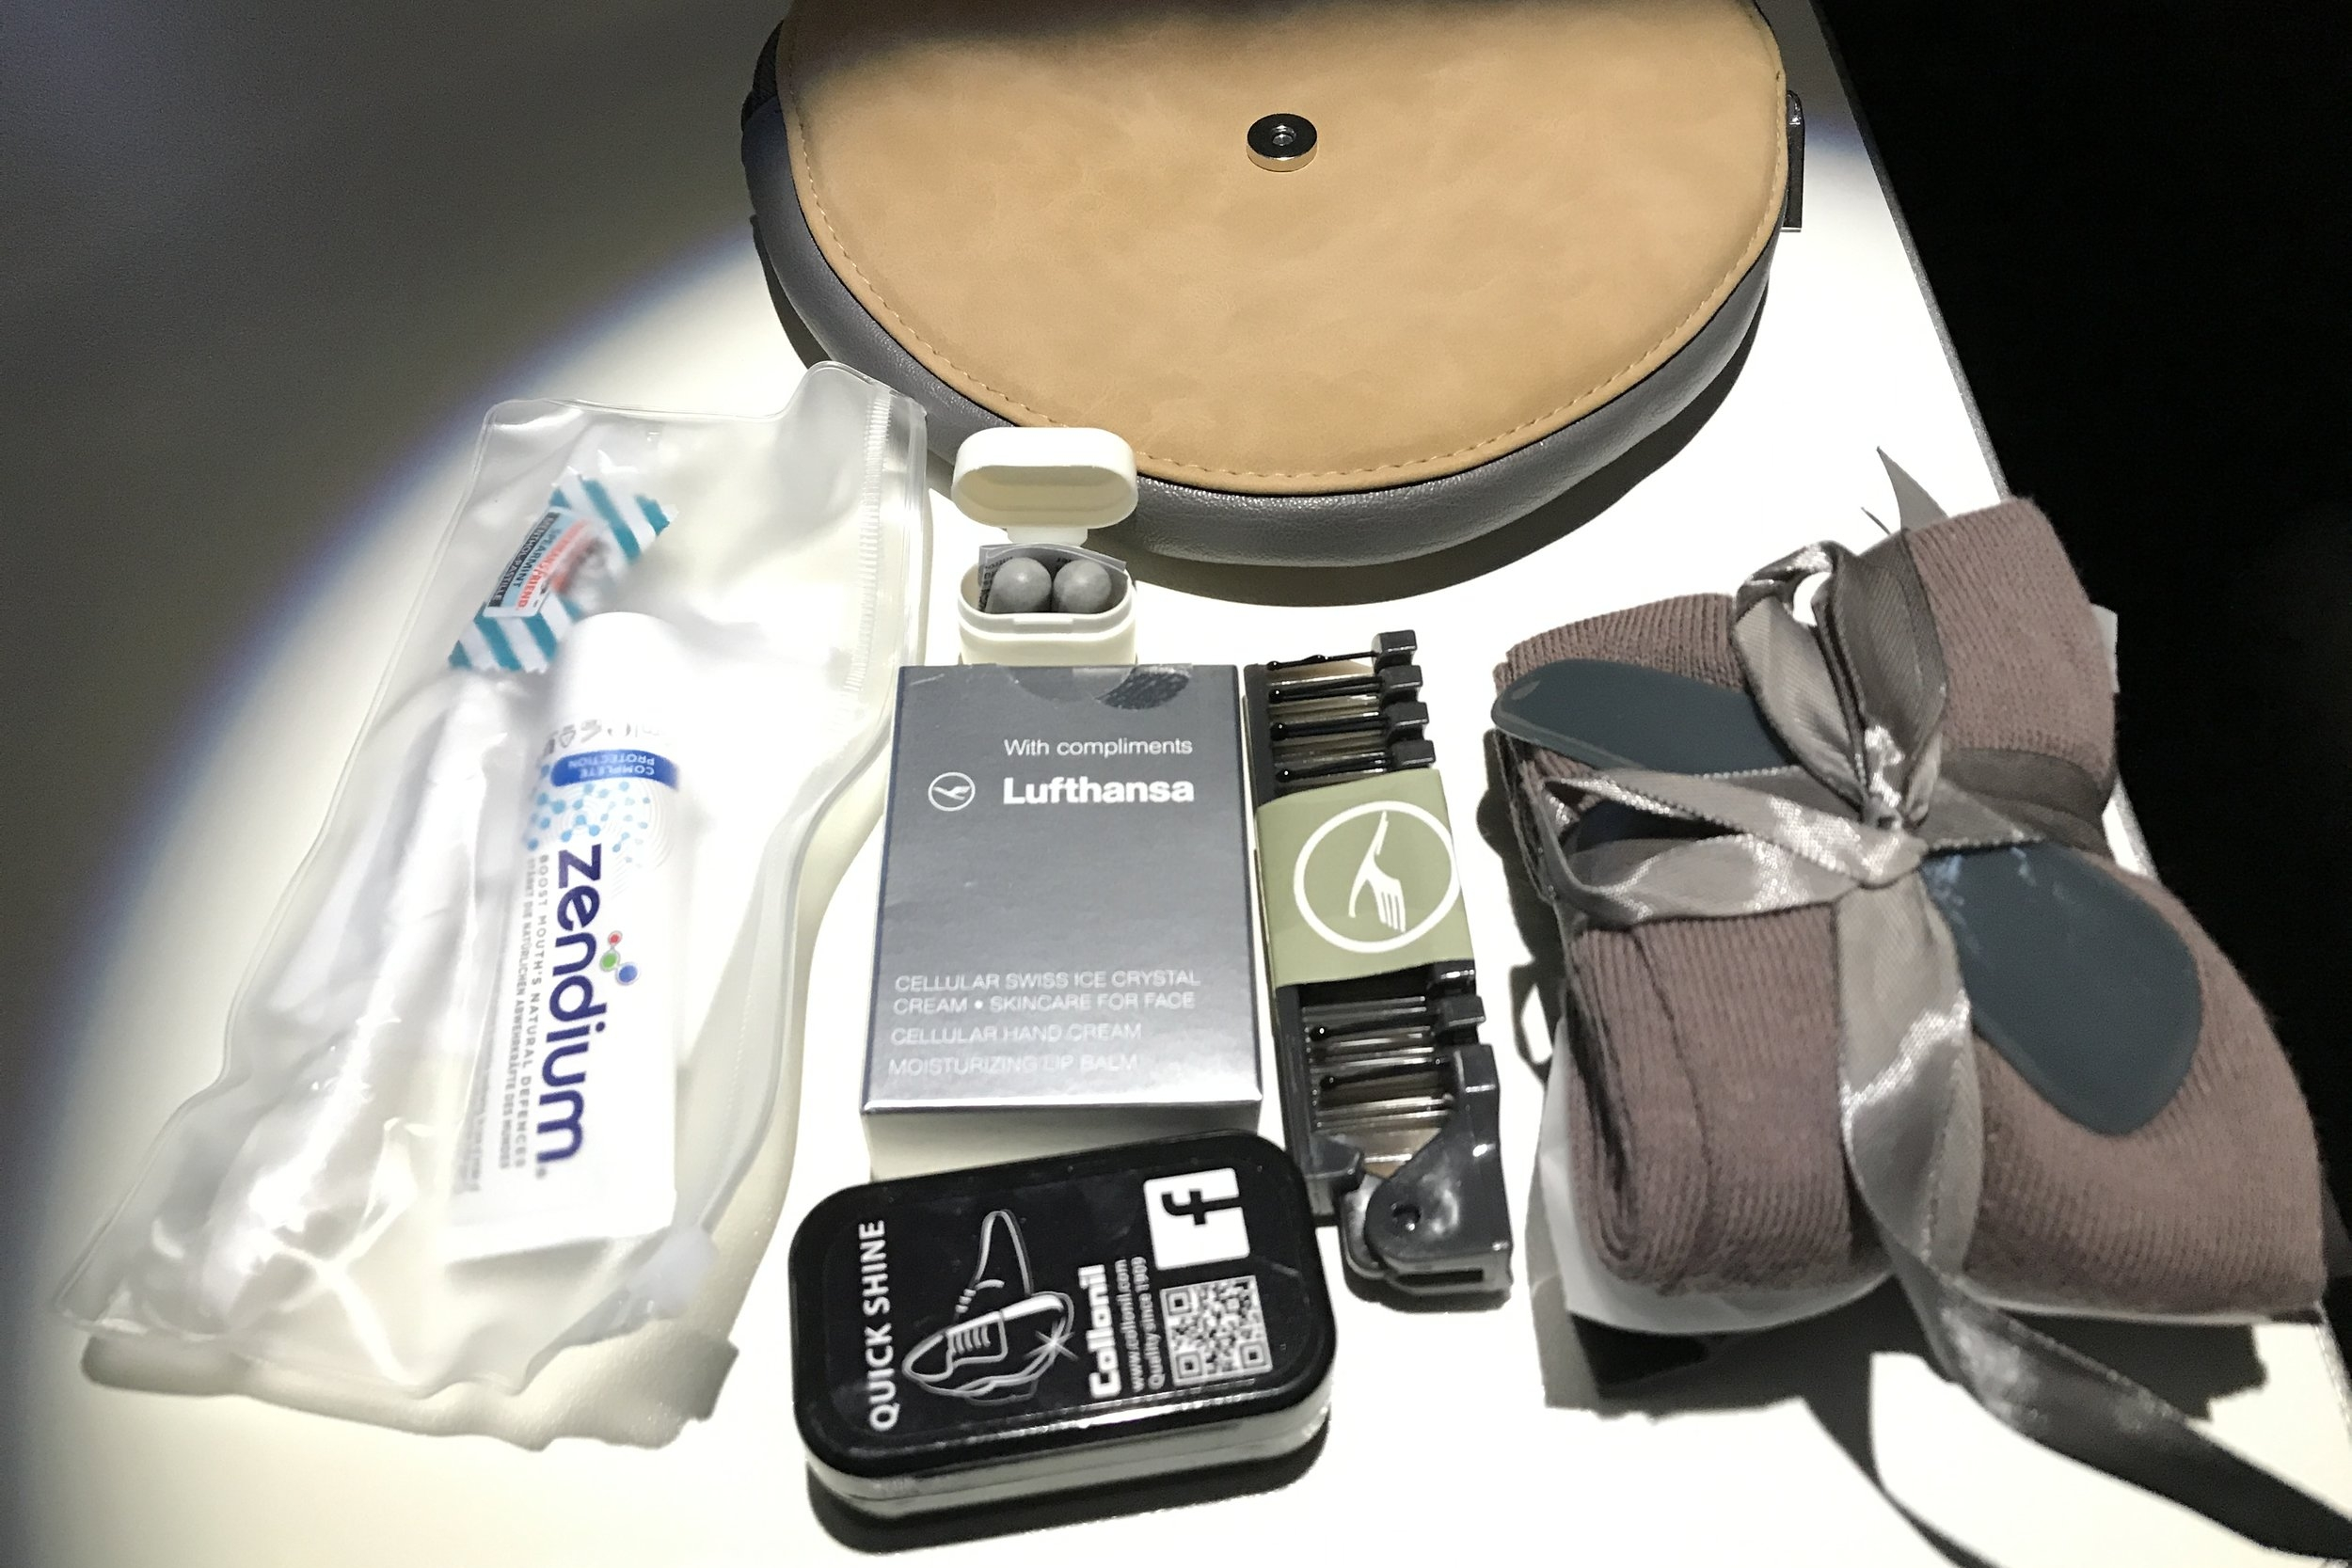 Lufthansa First Class – Amenity kit contents